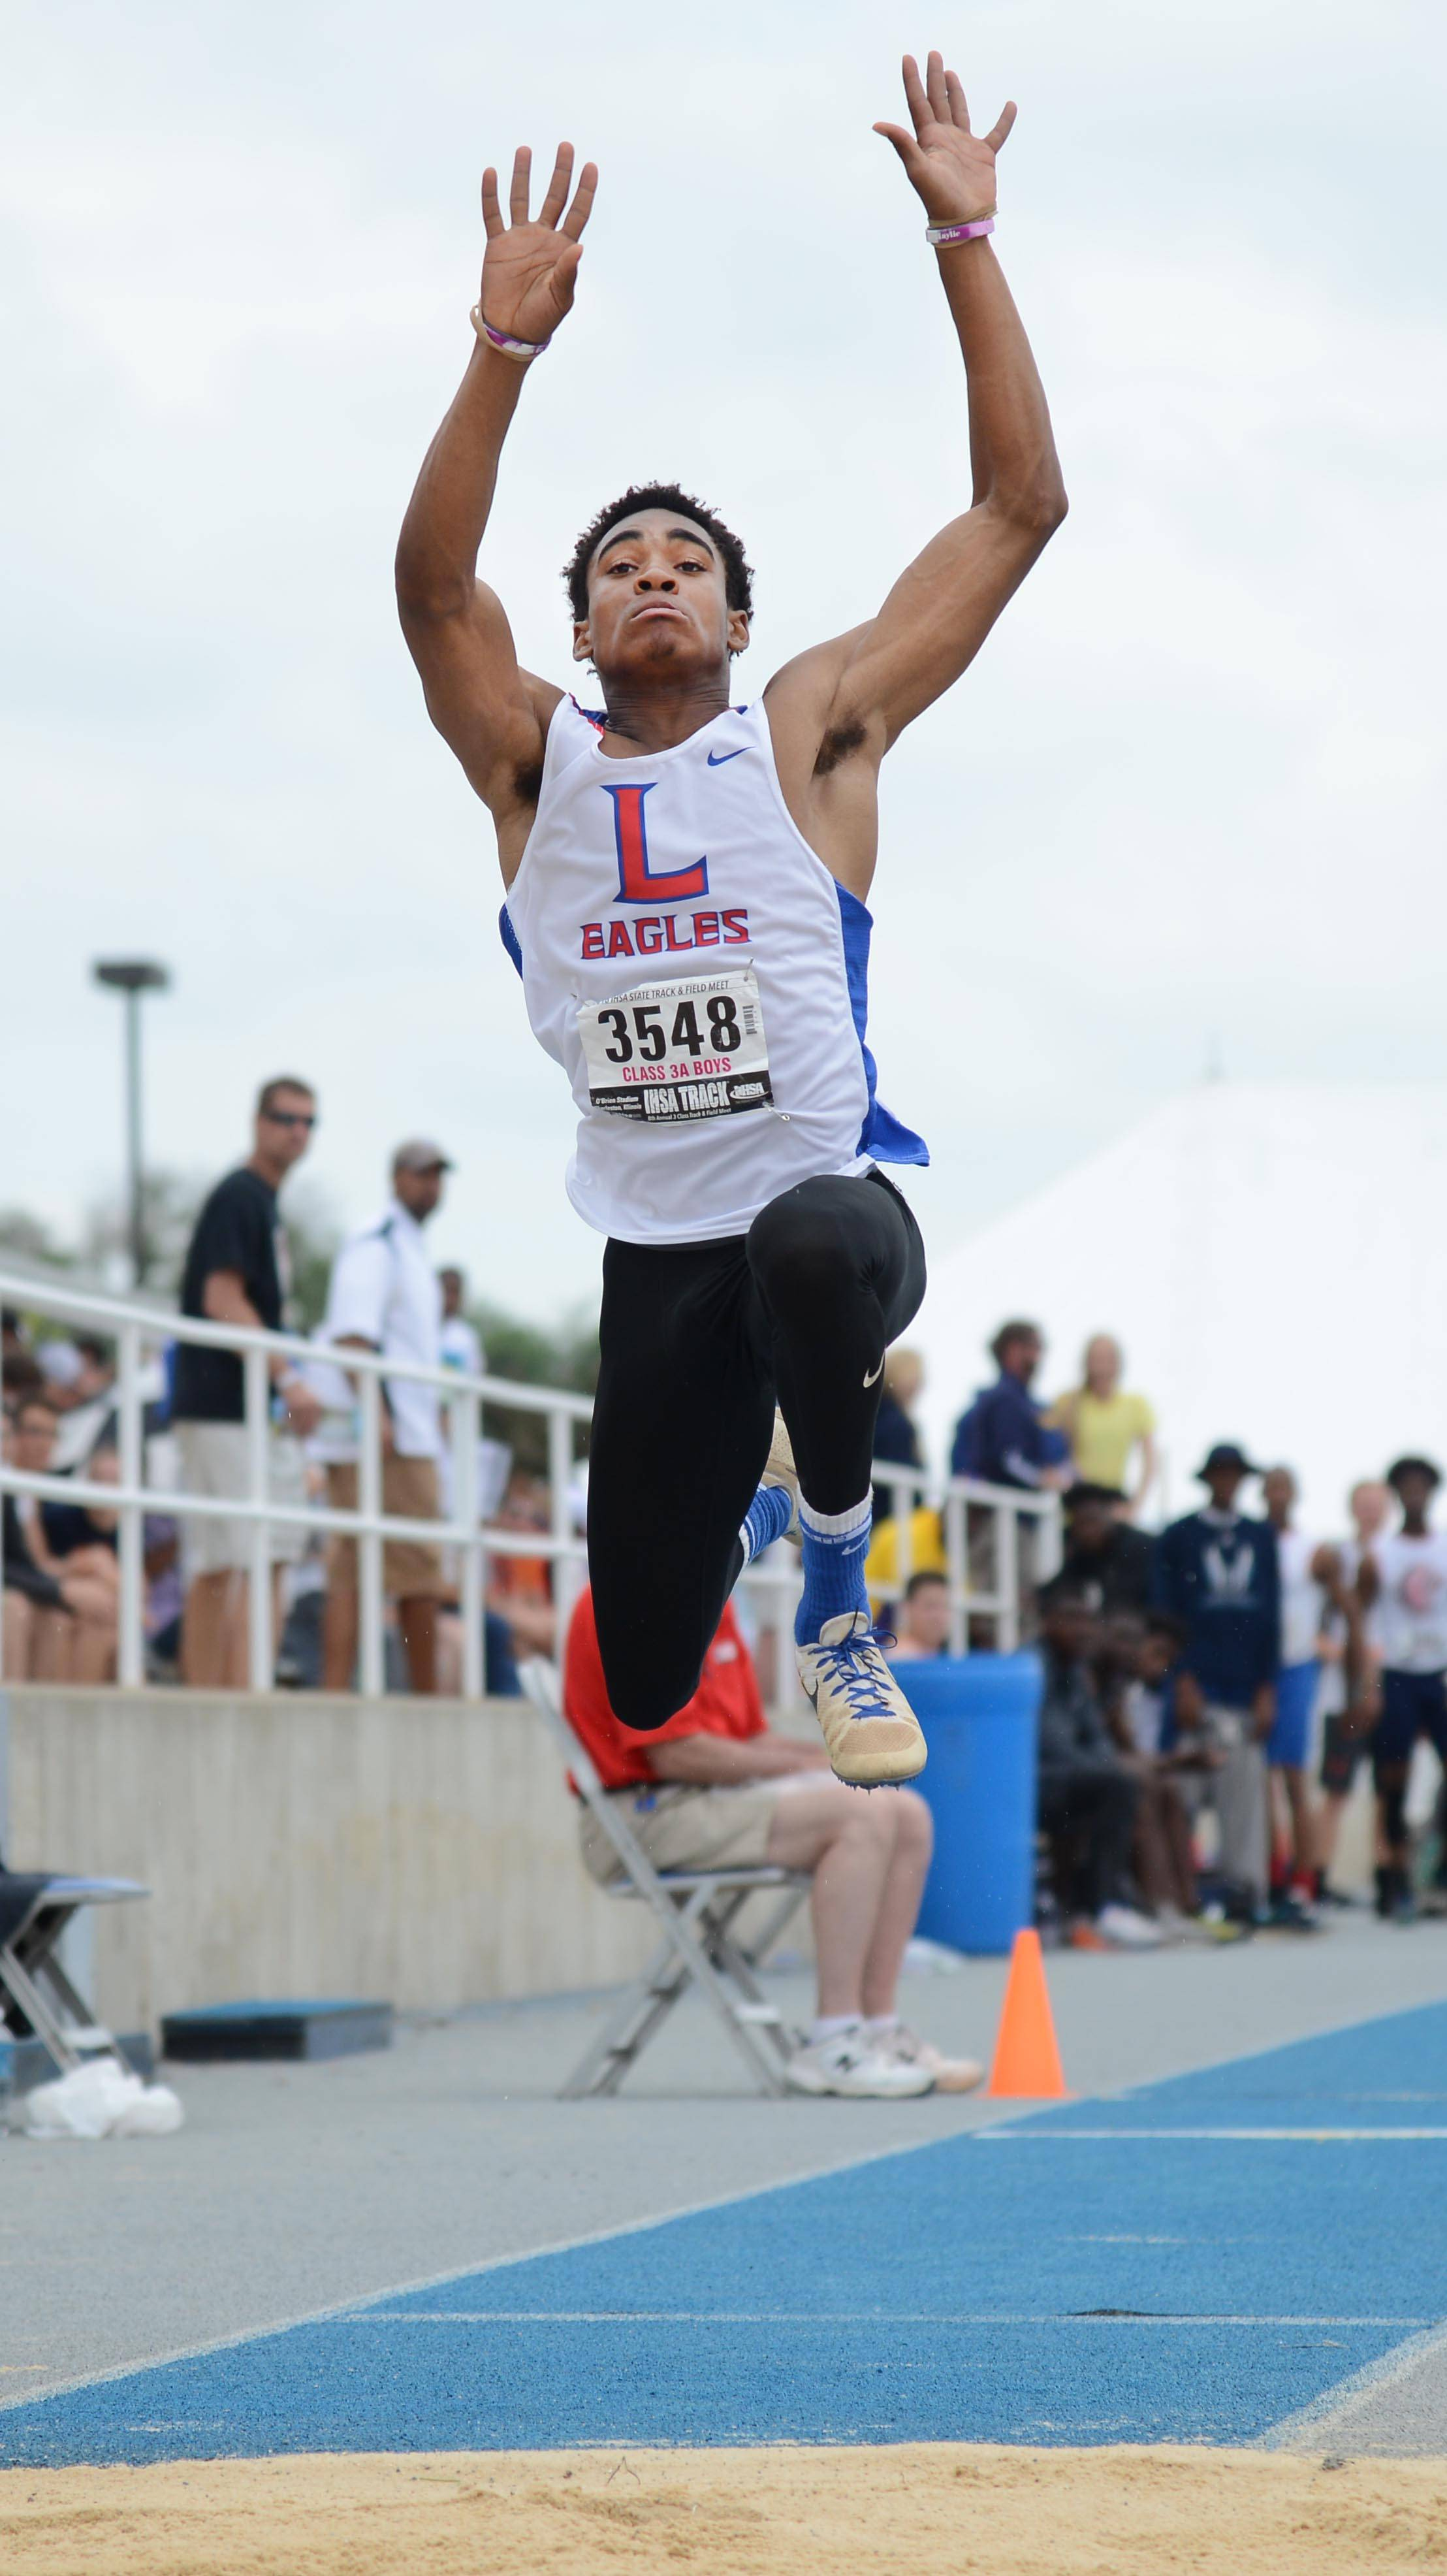 Lakes' Cameron Ruiz bounds toward a title in the triple jump Saturday during the boys track and field state finals at Eastern Illinois' O'Brien Stadium.